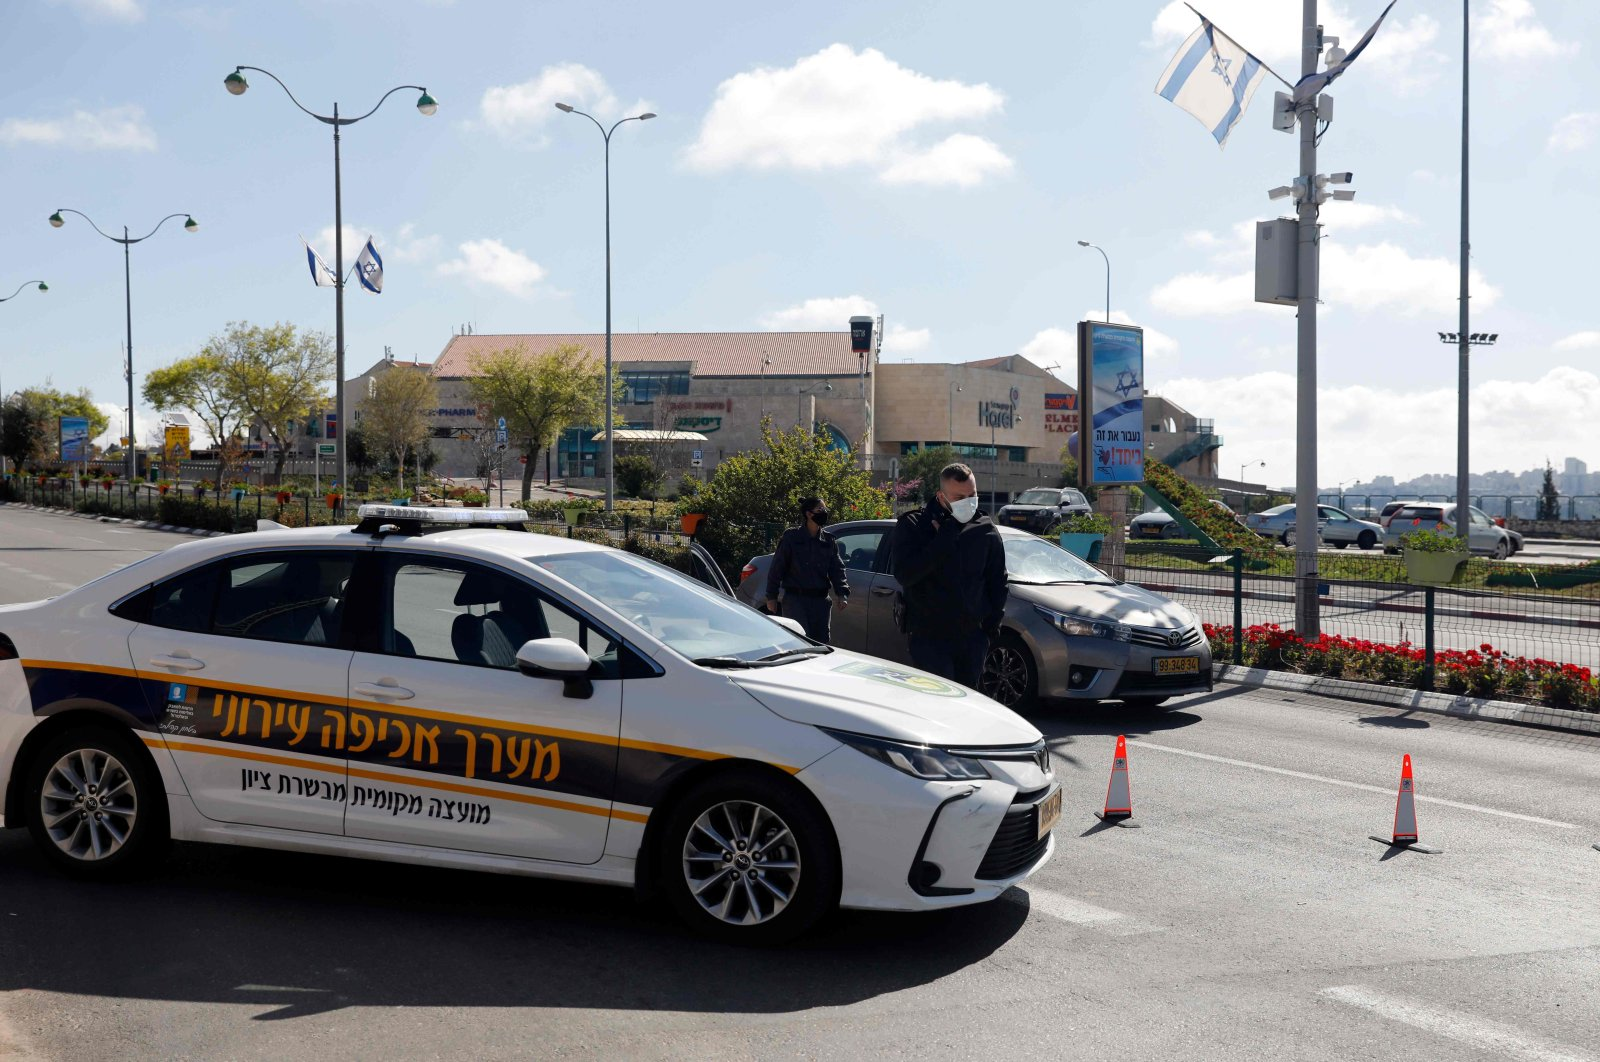 Members of the Israeli police man a checkpoint on a highway leading to Jerusalem to ensure that people obey a lockdown imposed by the authorities to prevent the spread of the novel coronavirus, near the Arab-Israeli town of Abu Ghosh, Israel, April 9, 2020. (AFP Photo)